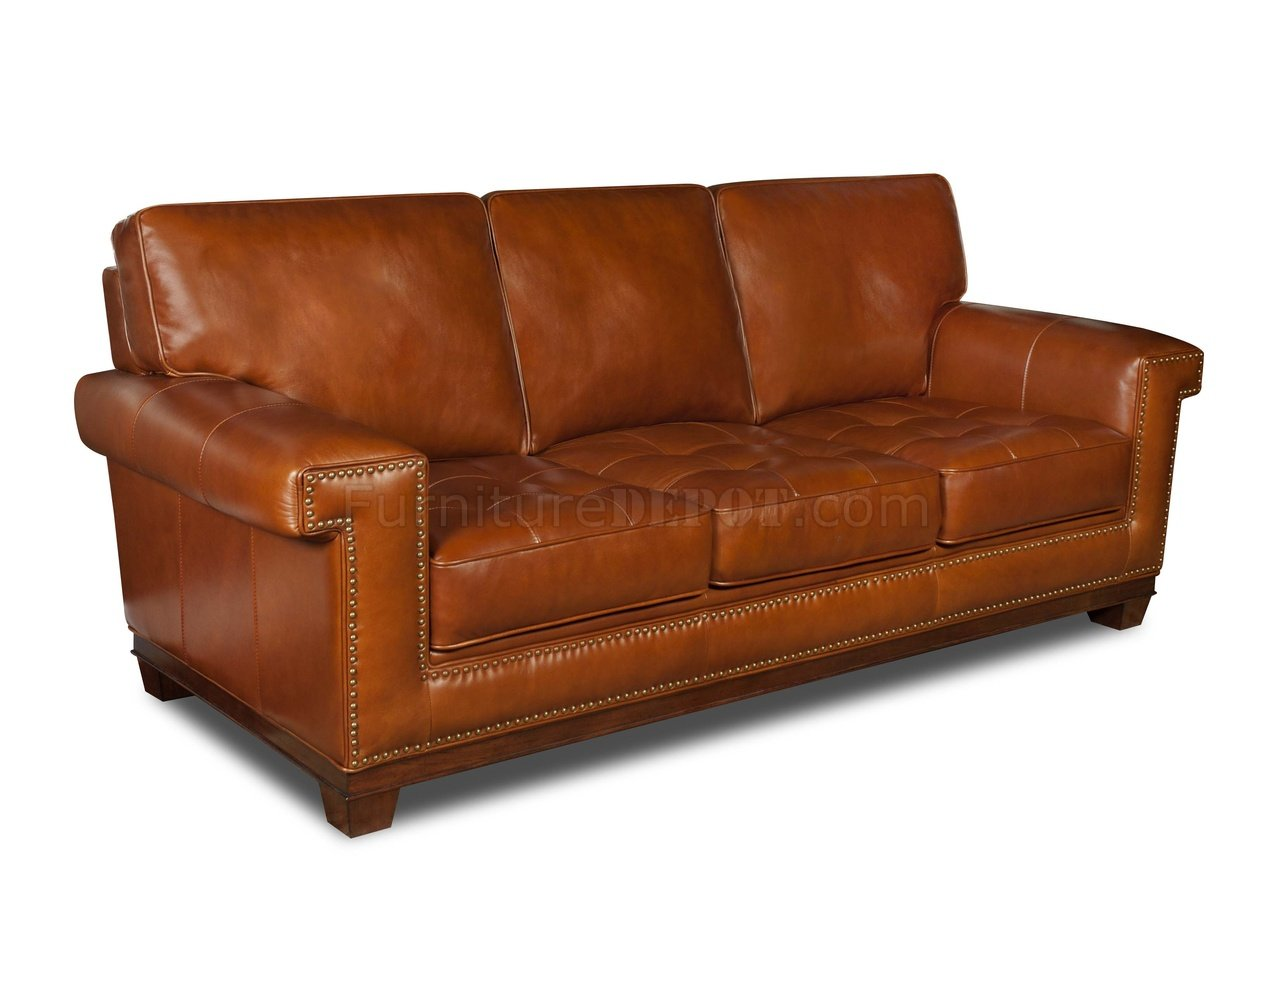 Rustic top grain leather modern sofa w optional items for Leather furniture